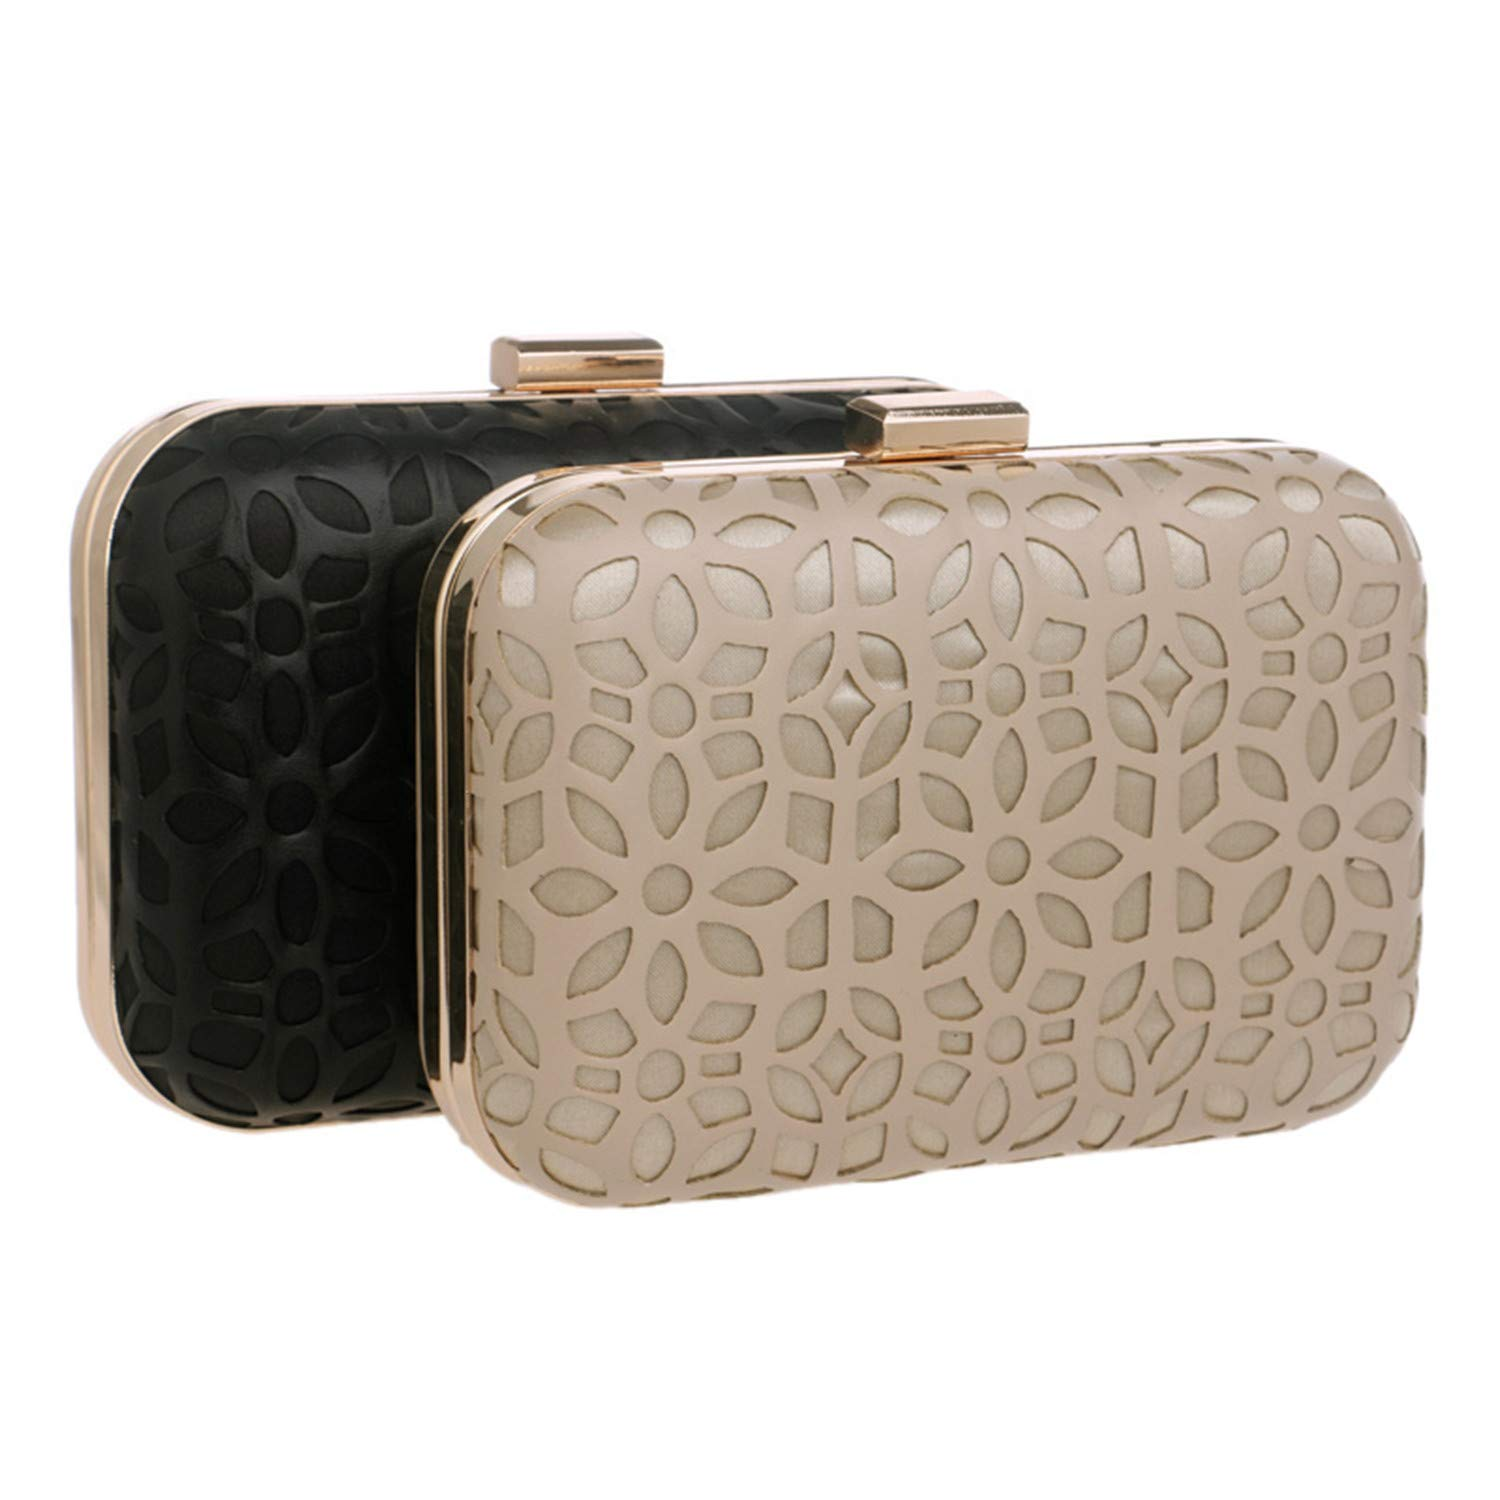 Fashion Hollow Out Style Pu Evening Bags With Chain Shoulder Day Clutches Evening Bags Black//Gold Purse Wallets